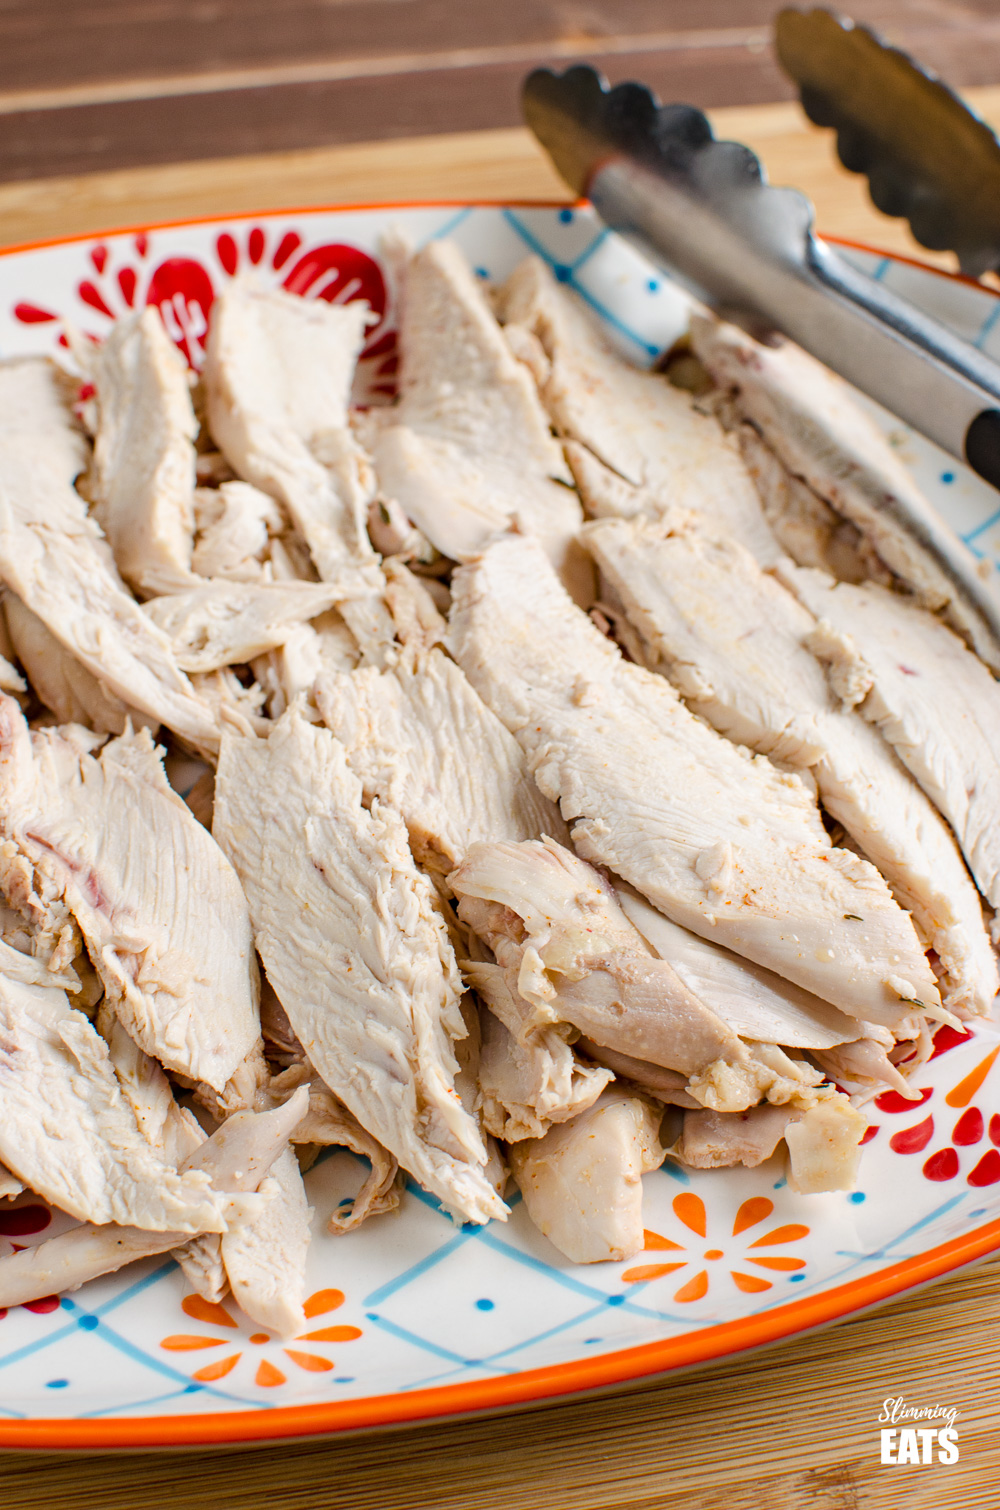 shredded sliced instant pot whole cooked chicken on plate with metal tongs